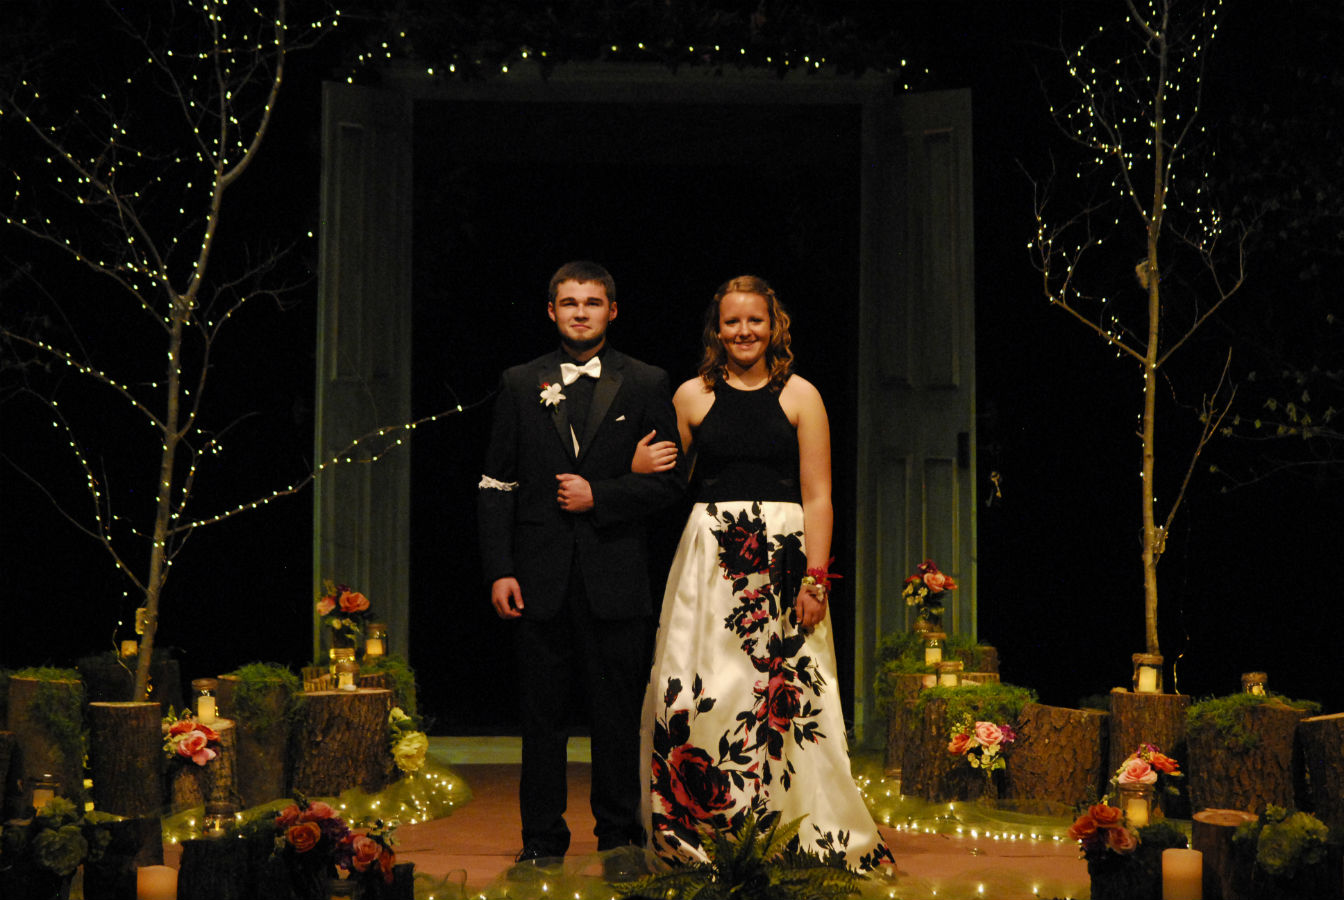 Garett Klavon and Avery Dicke at Grand March for the 2017 prom.